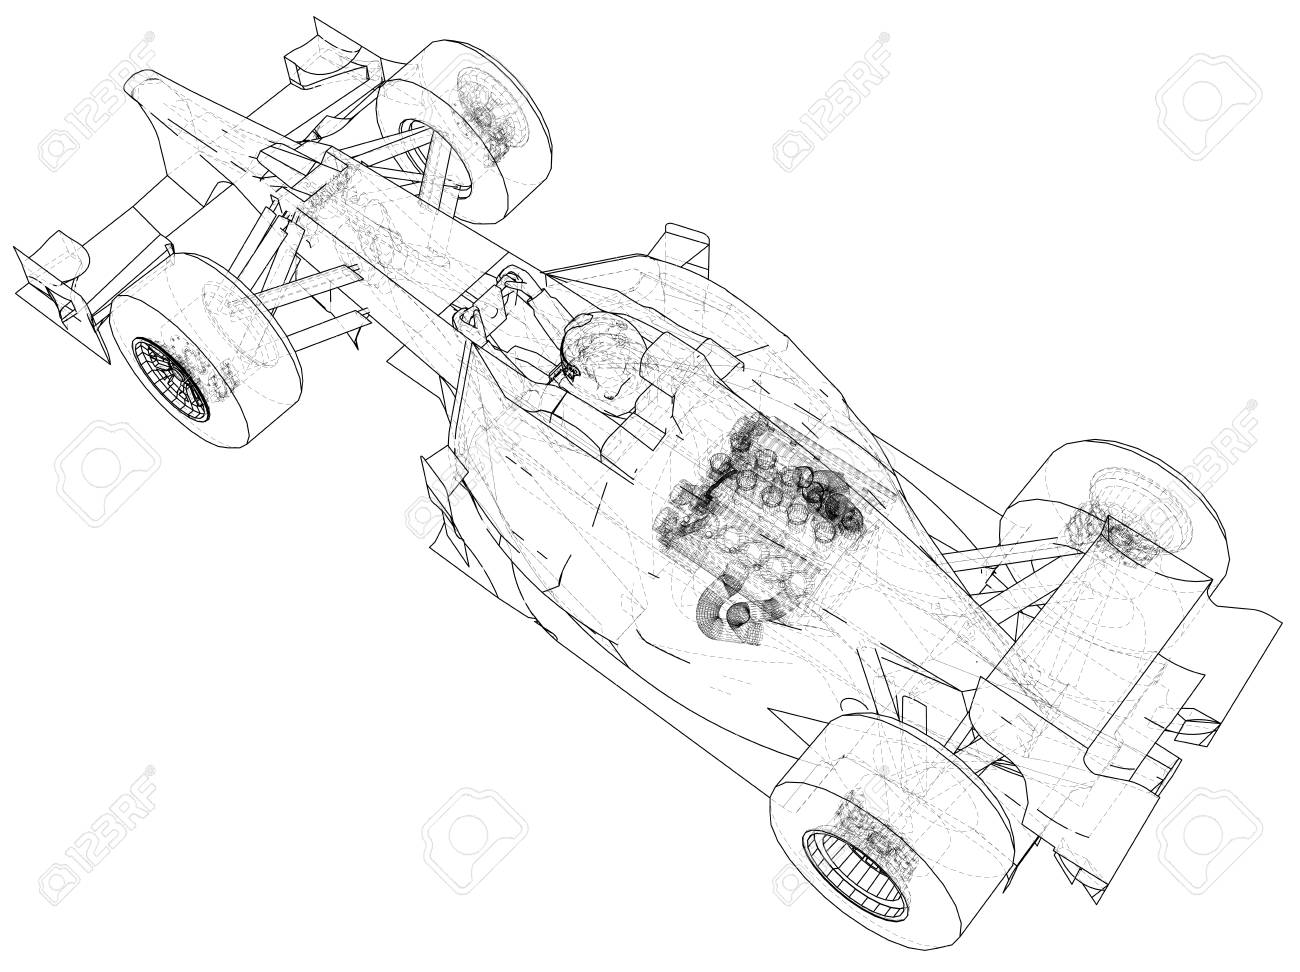 3d drawing of a car at getdrawings free for personal use 3d